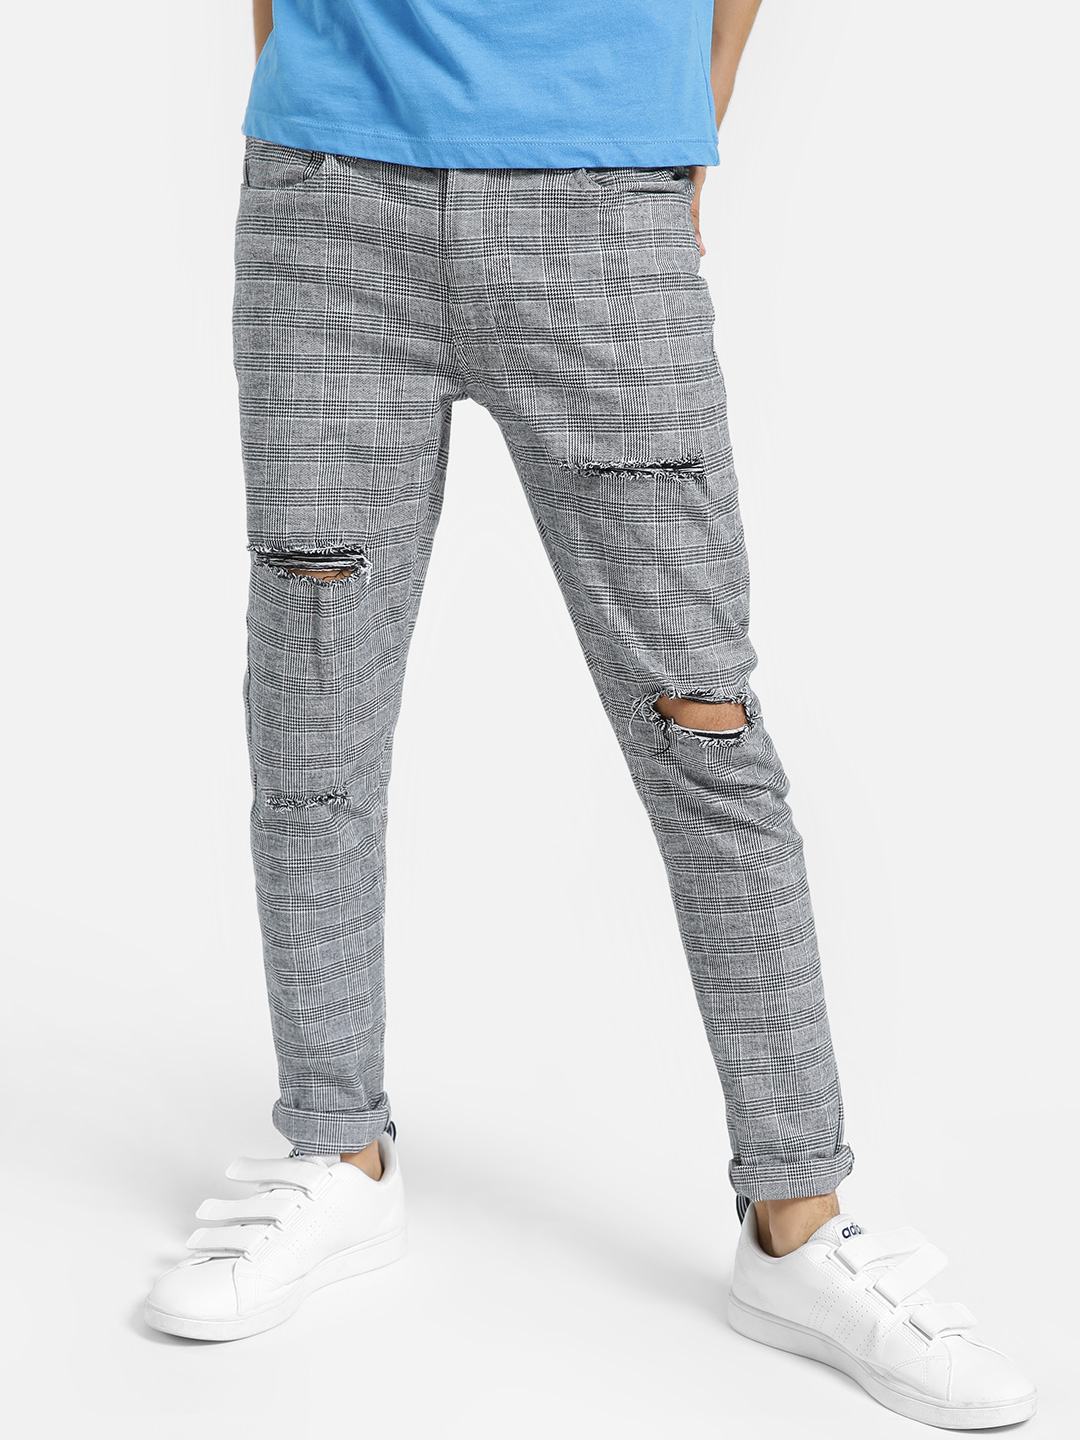 Kultprit Multi Distressed Glen Check Slim Trousers 1